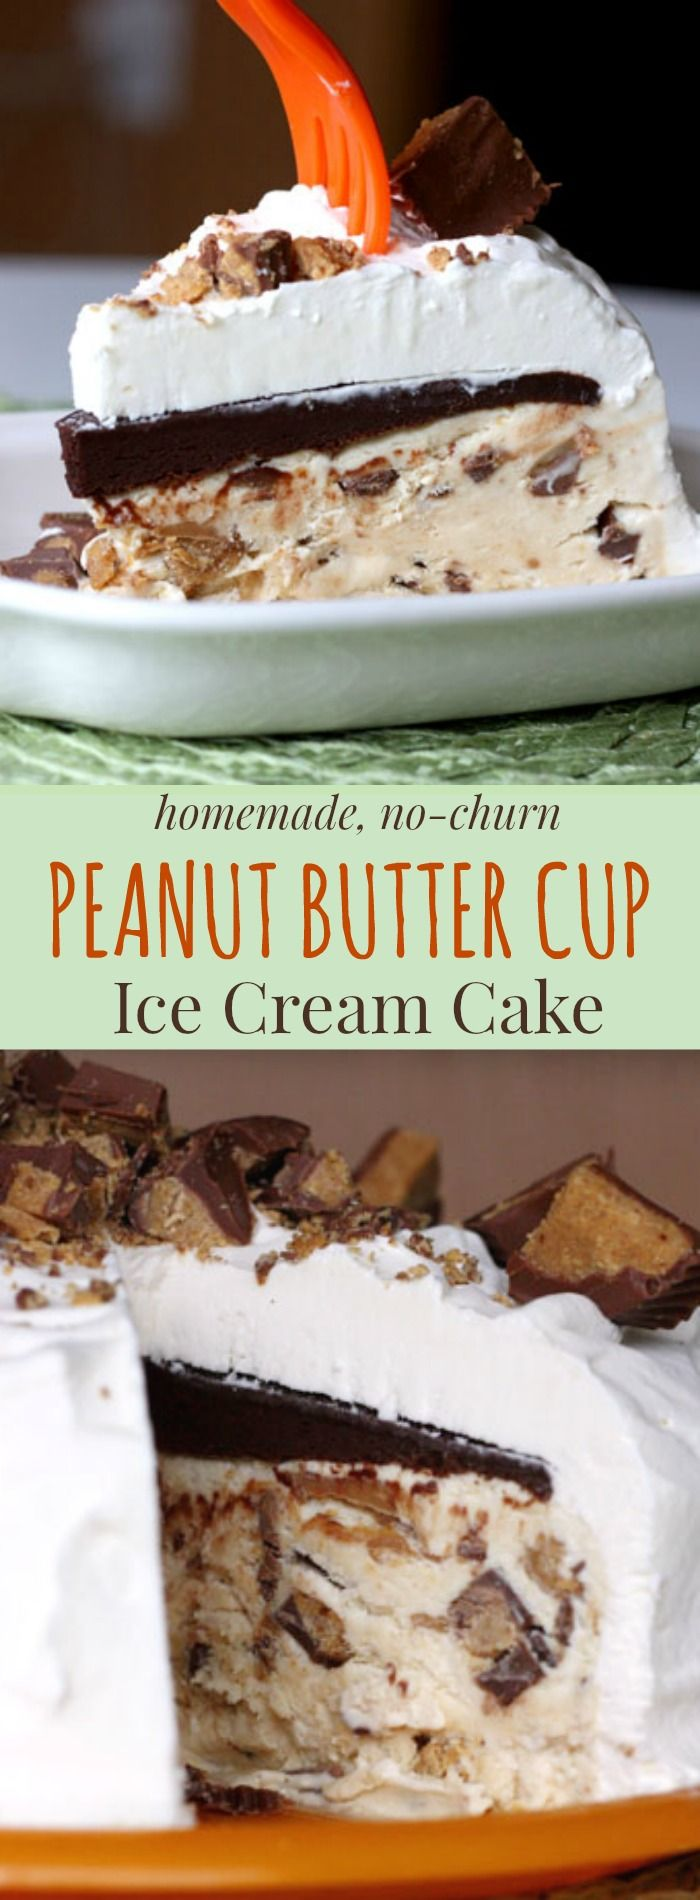 Homemade No-Churn Peanut Butter Cup Ice Cream Cake - this decadent dessert loaded with chocolate peanut butter is super easy with only seven ingredients!   cupcakesandkalechips.com   gluten free